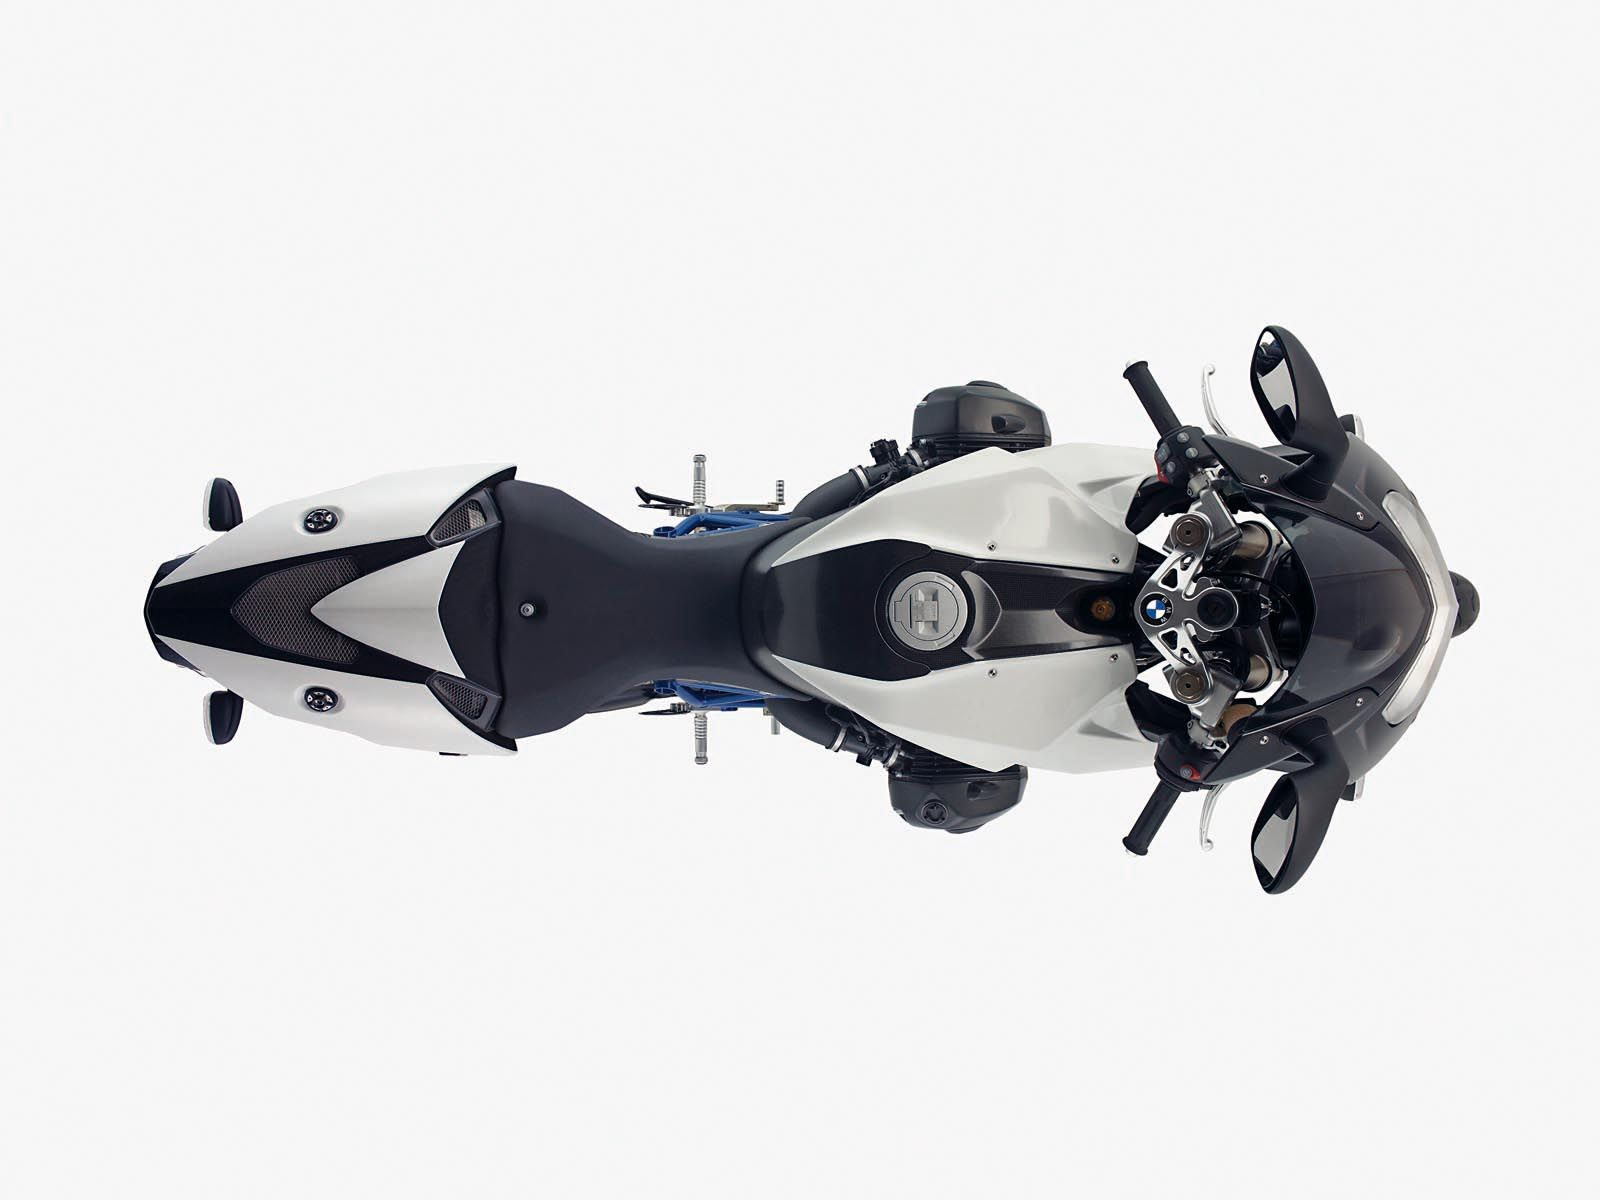 Top View Of A Motorcycle Google Search Sports Photos Bmw Sports